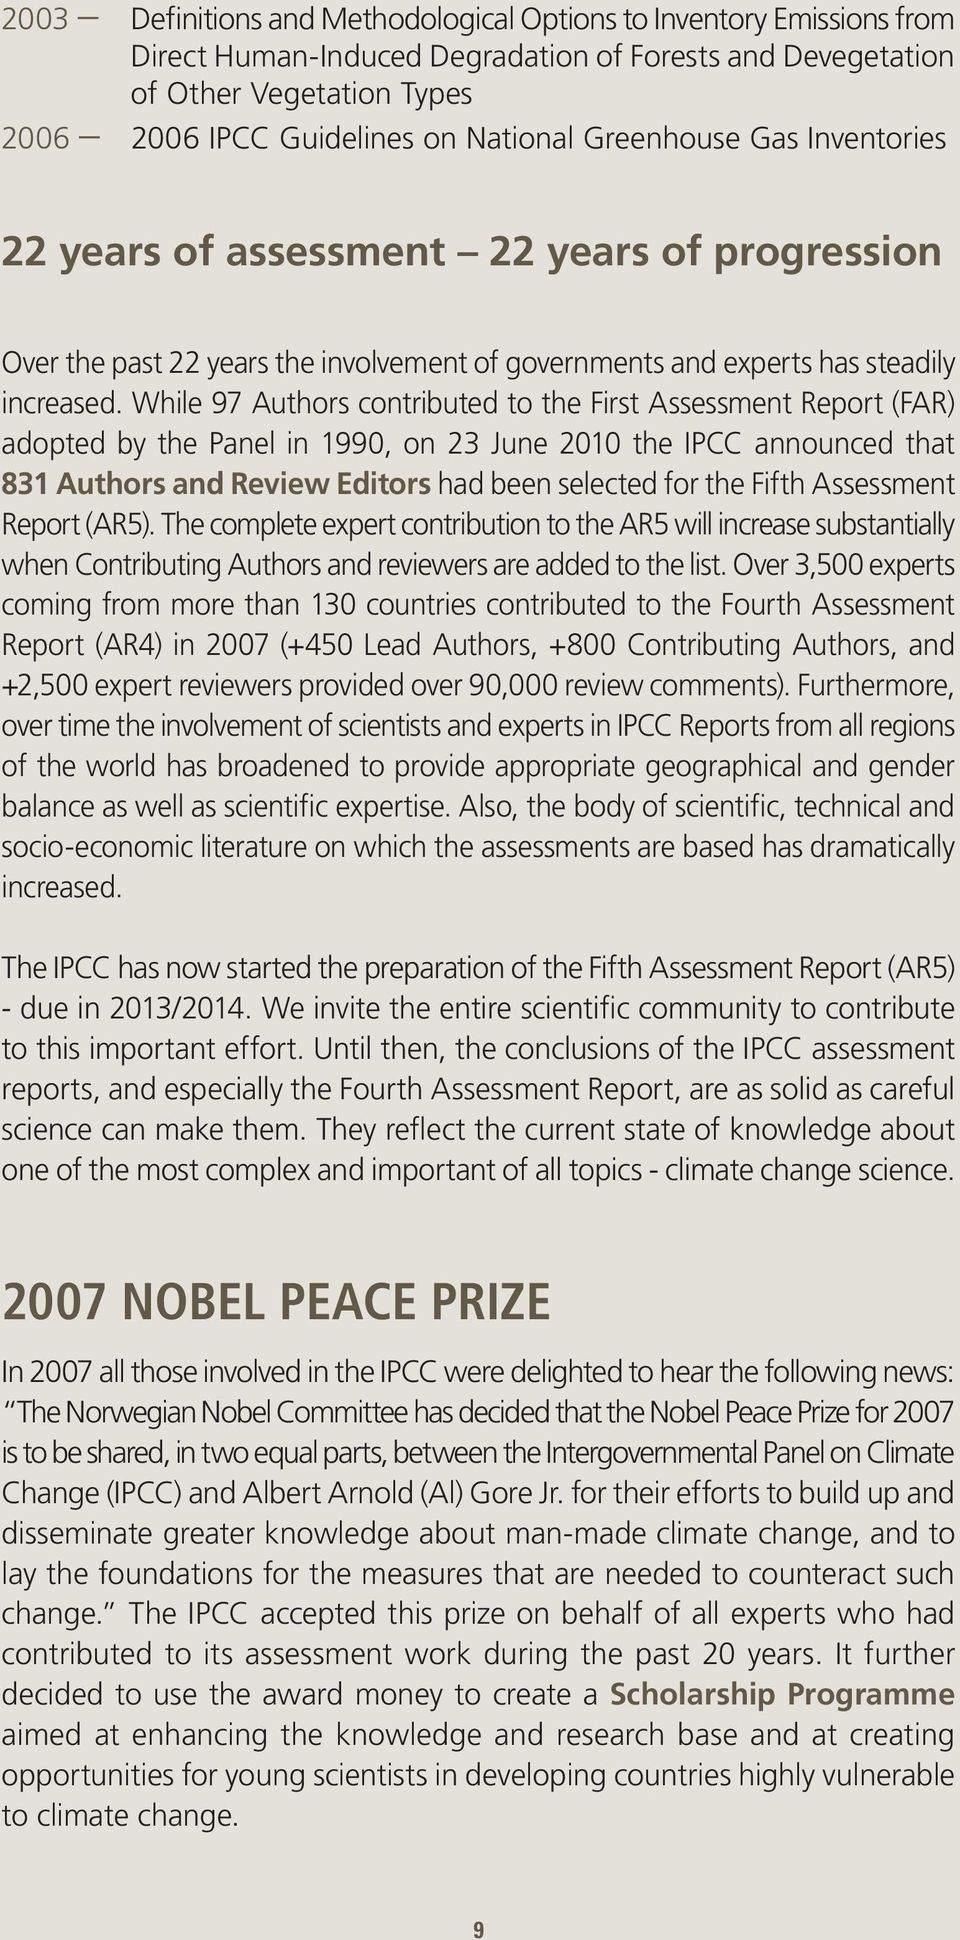 While 97 Authors contributed to the First Assessment Report (FAR) adopted by the Panel in 1990, on 23 June 2010 the IPCC announced that 831 Authors and Review Editors had been selected for the Fifth